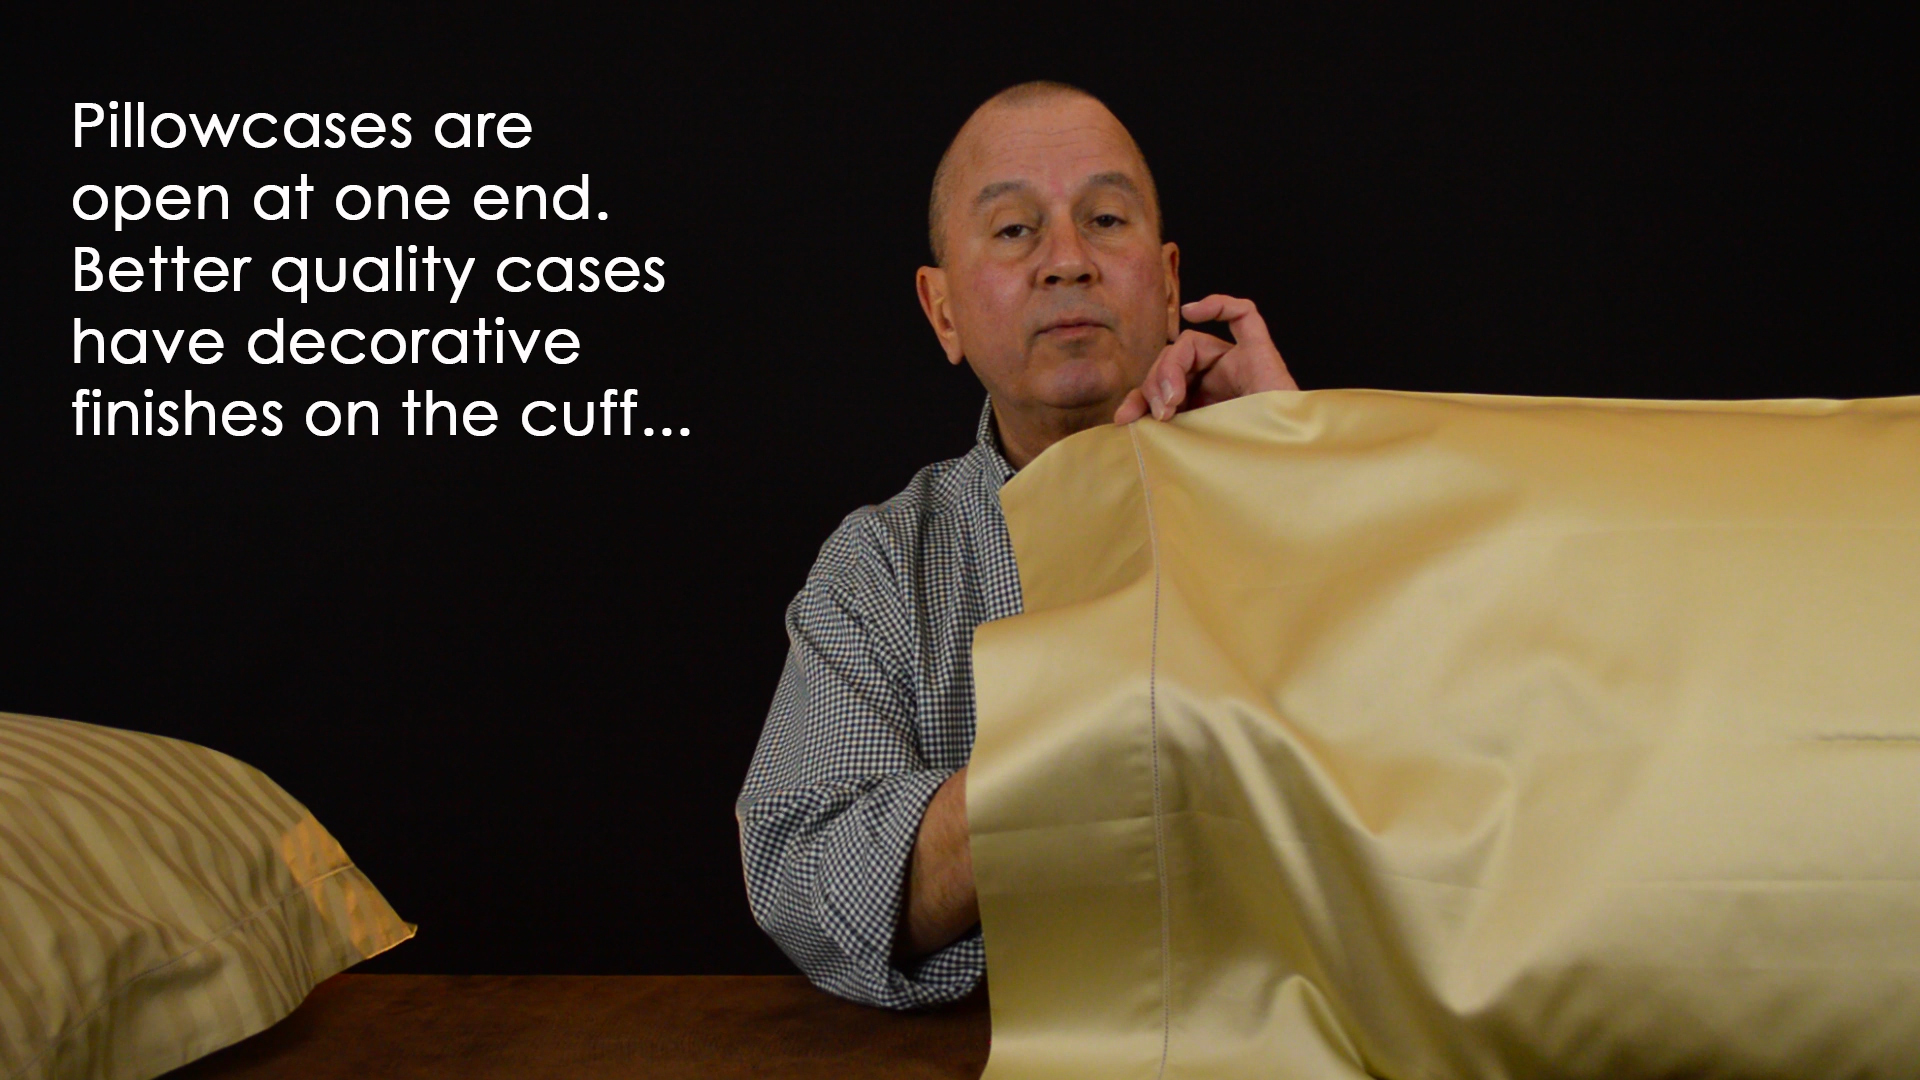 Pillowcases open from one end.